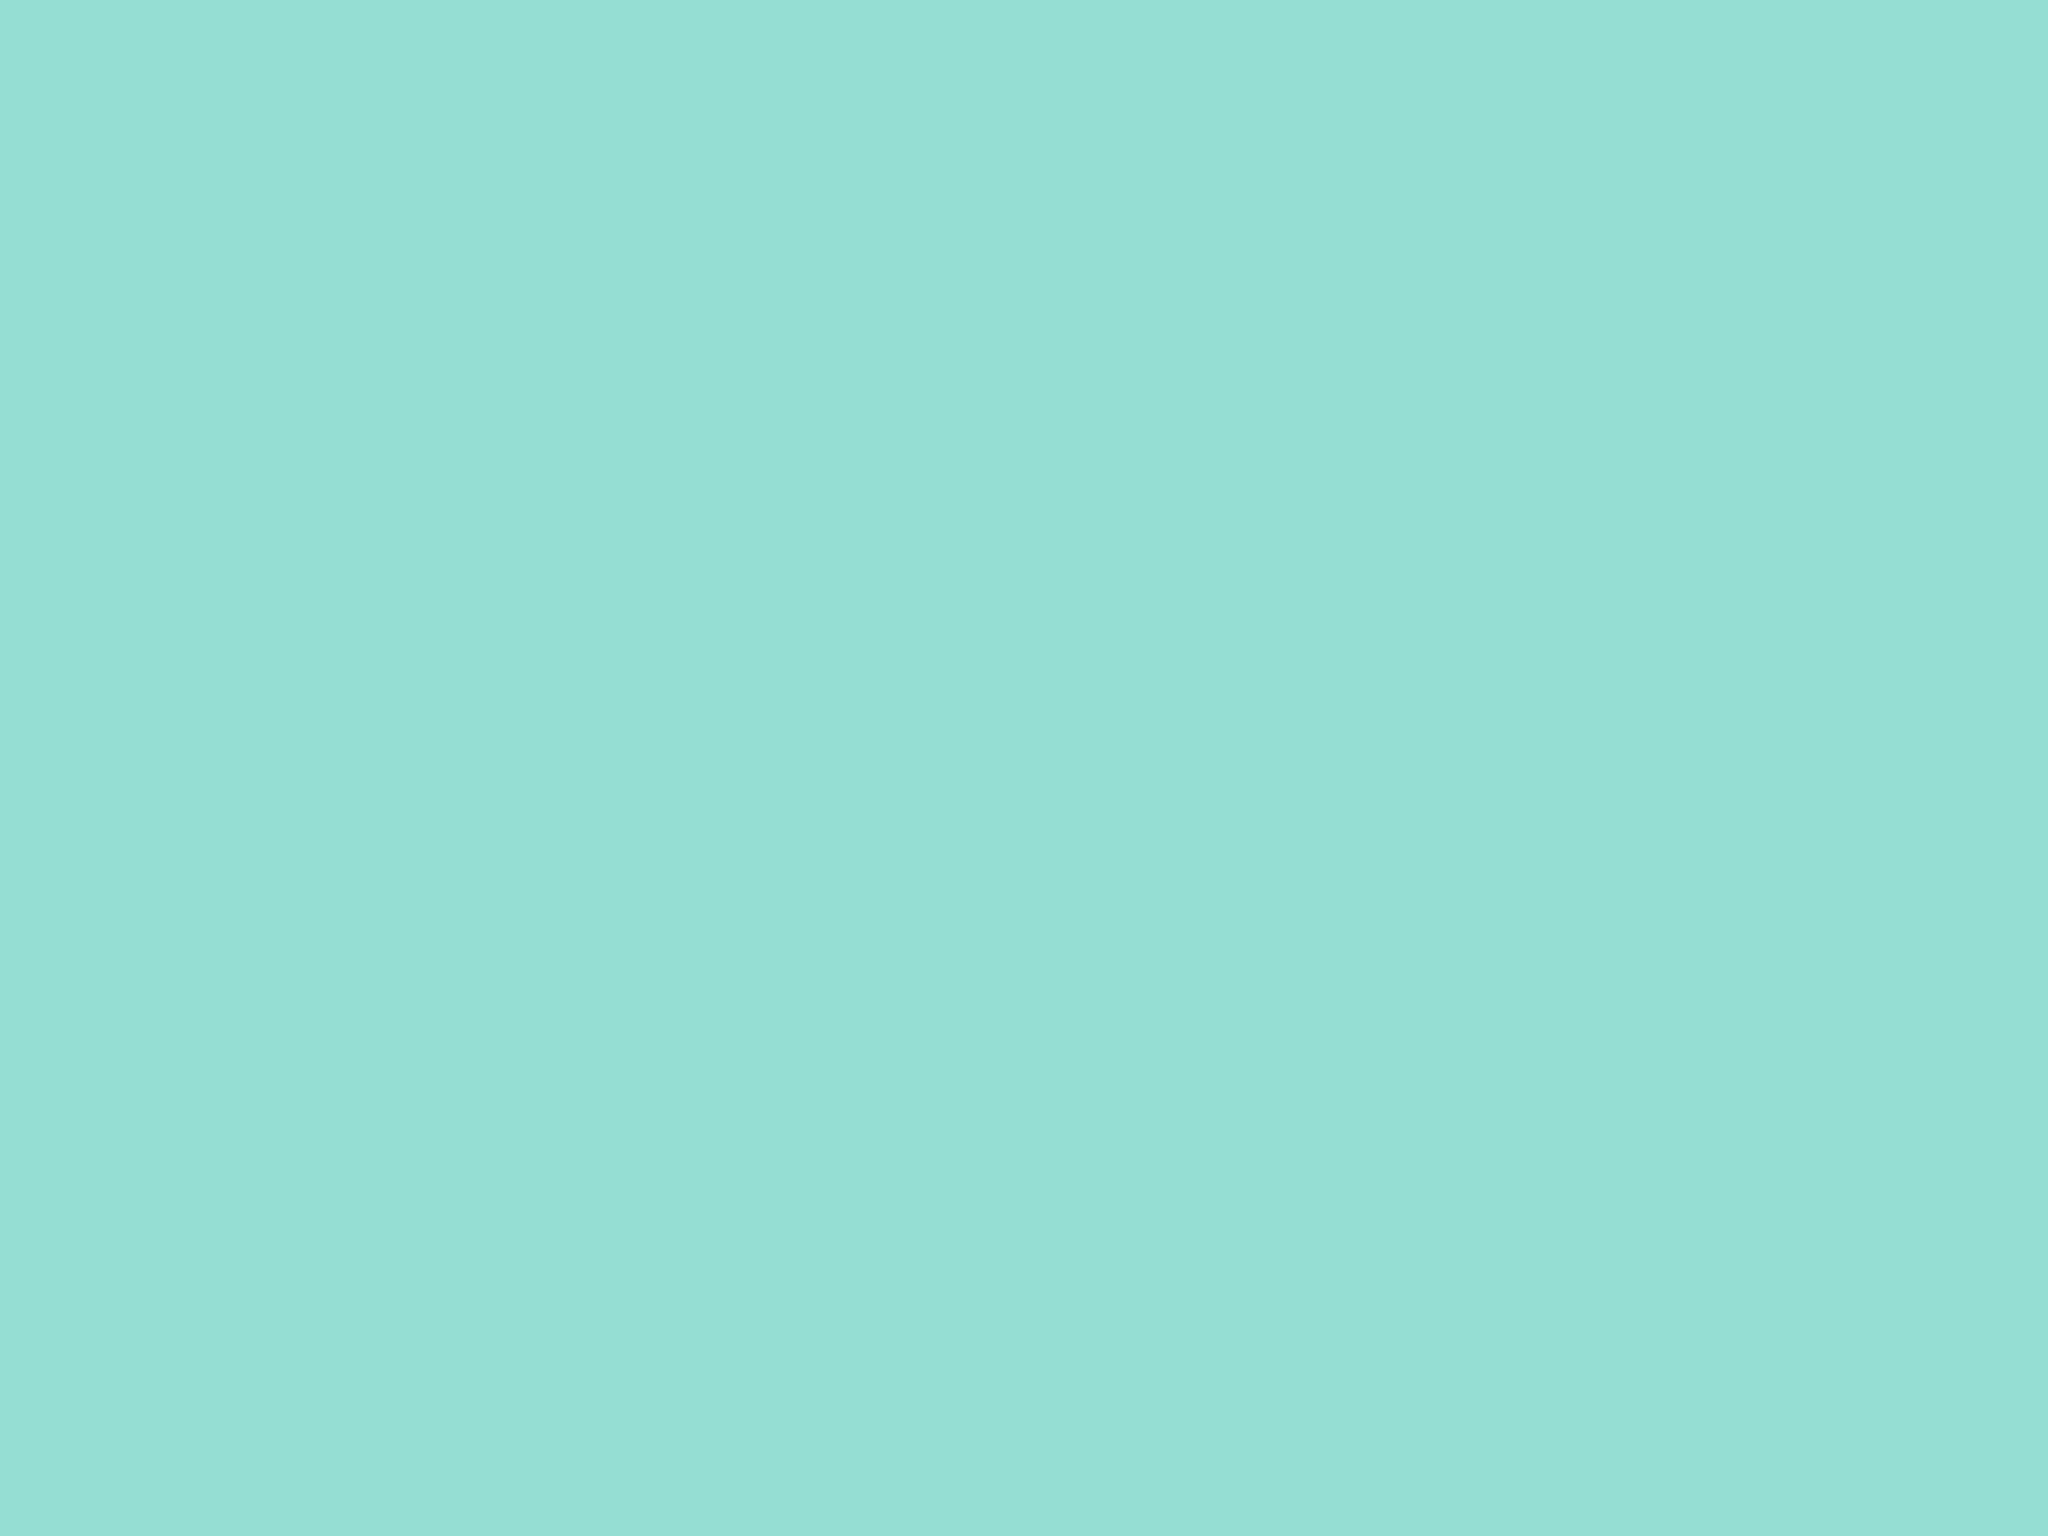 2048x1536 Pale Robin Egg Blue Solid Color Background